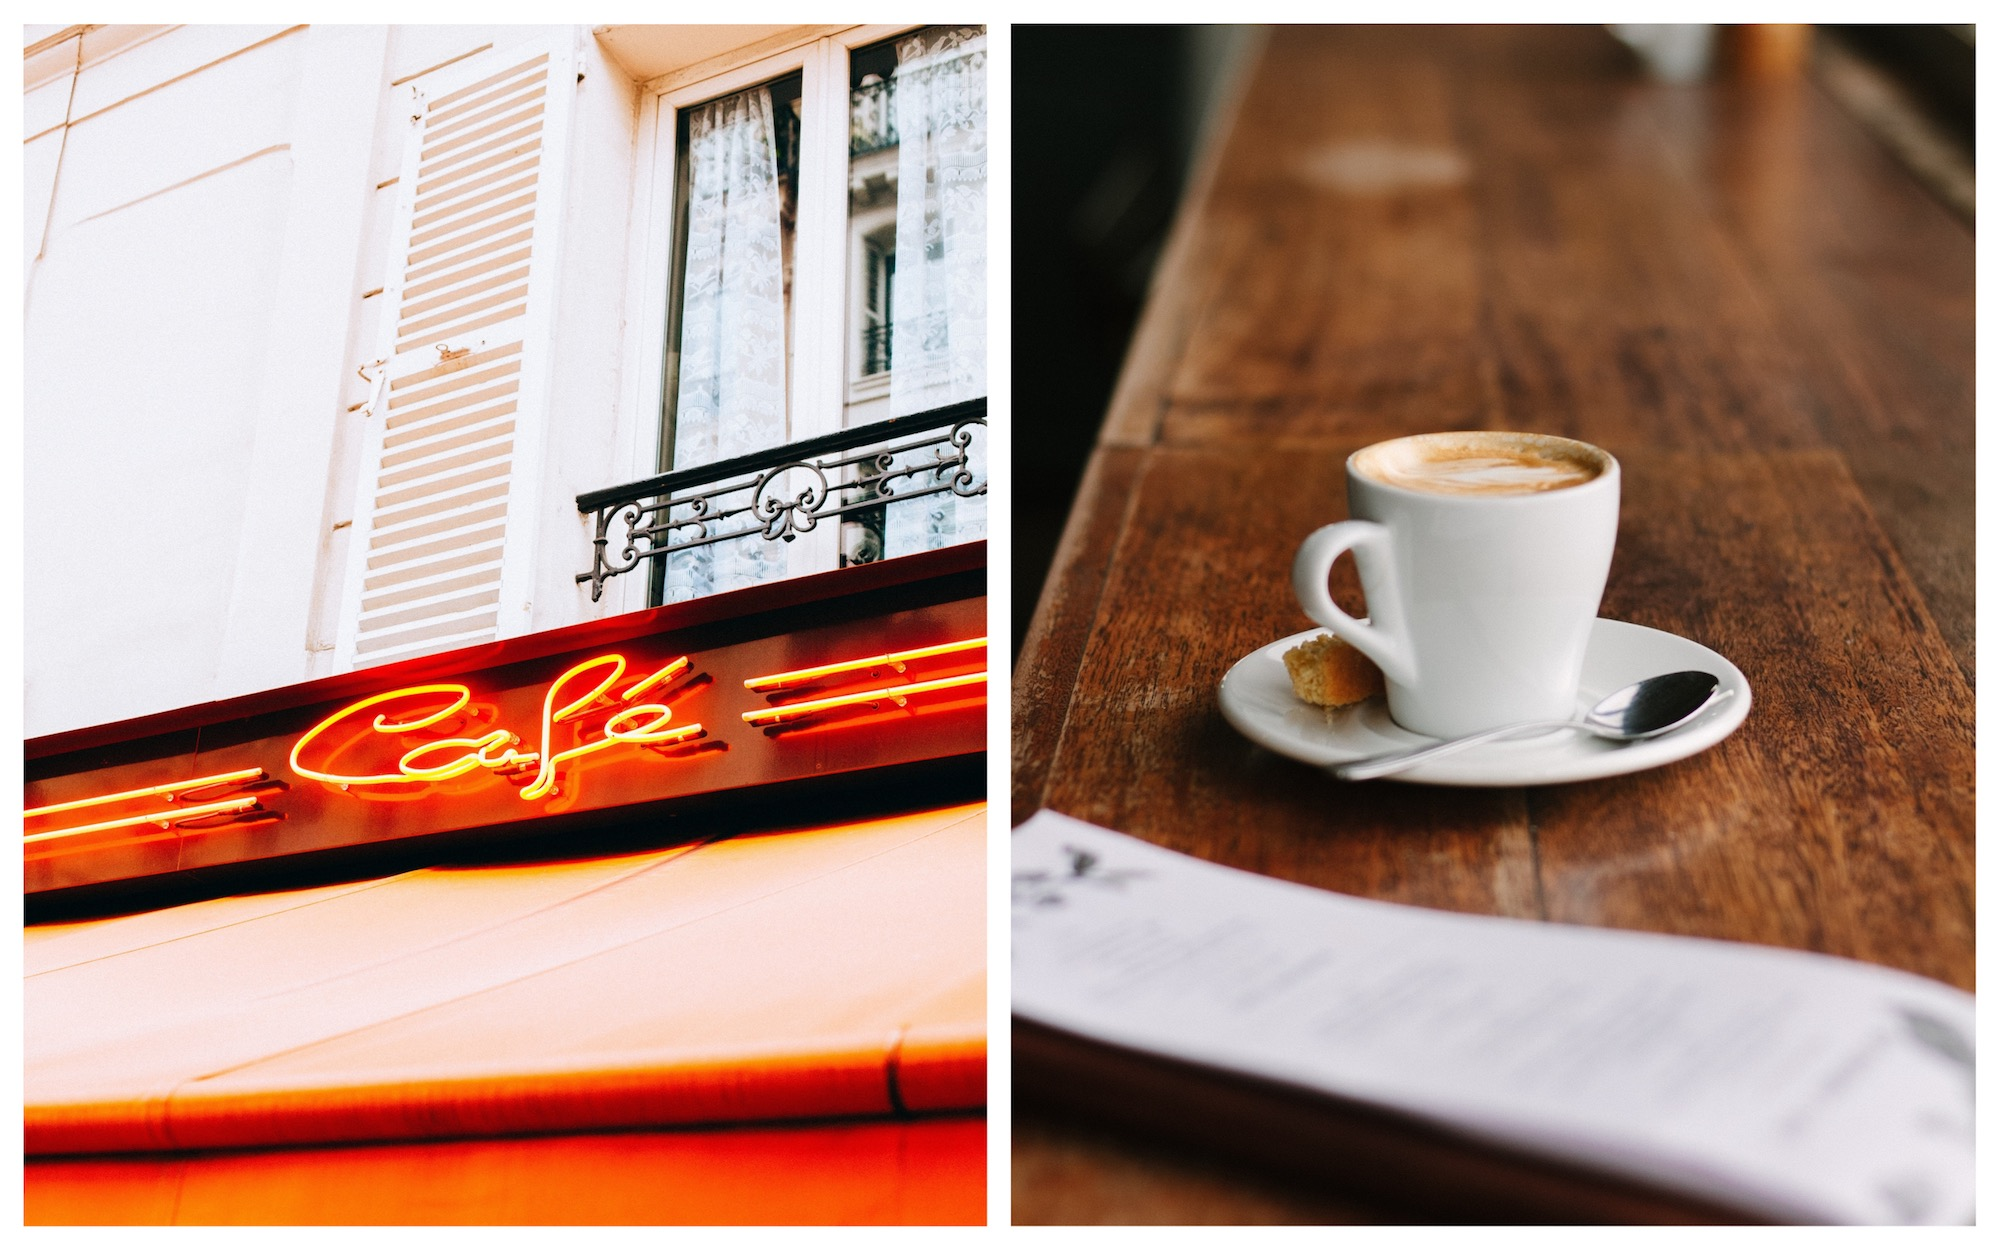 Paris cafes are very charming, and almost all have a neon-lit sign outside (left). And you can have coffee at a table or at the counter (right).